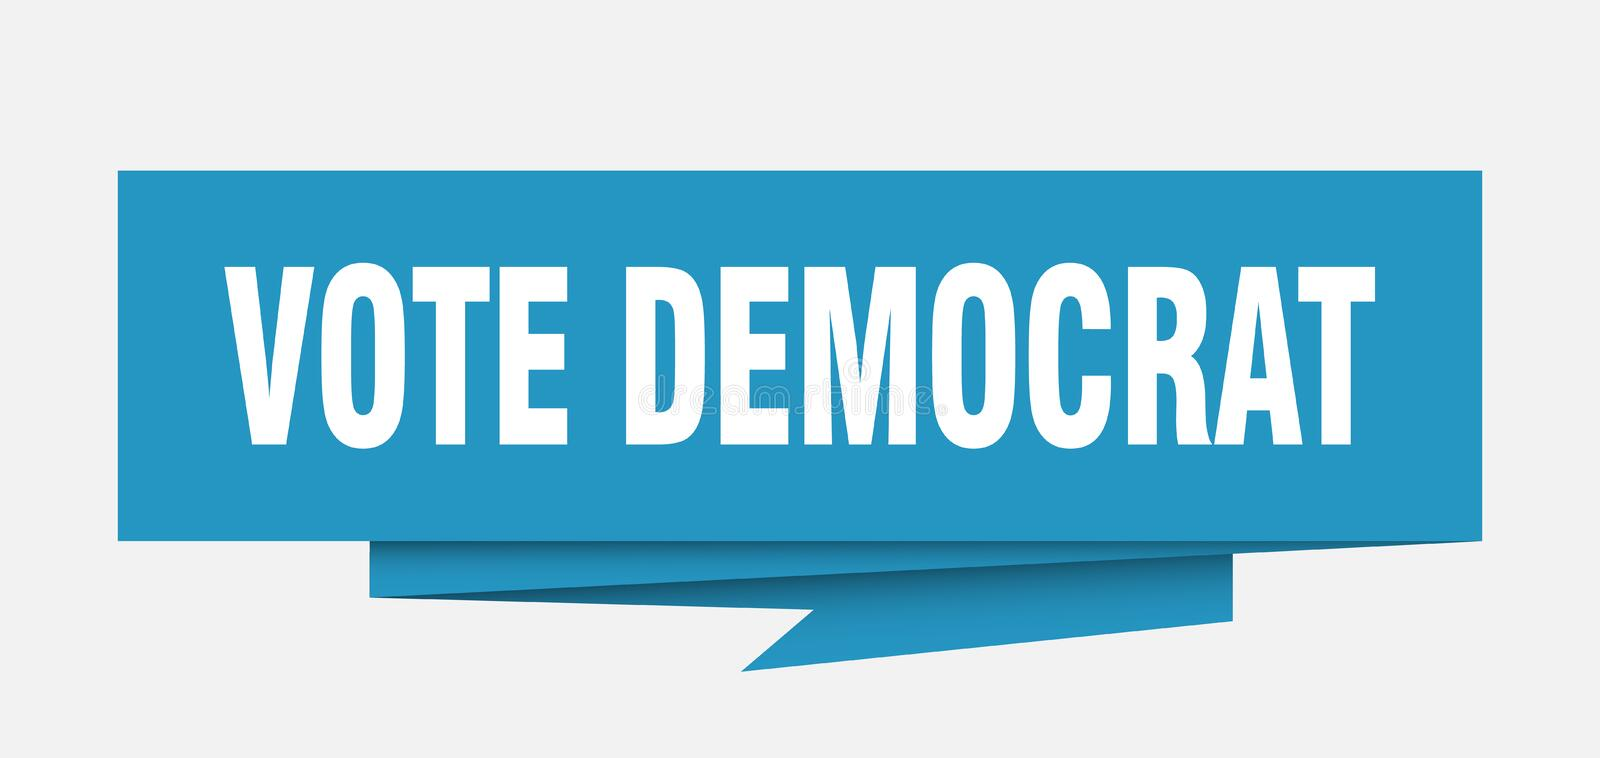 Démocrate de vote illustration stock